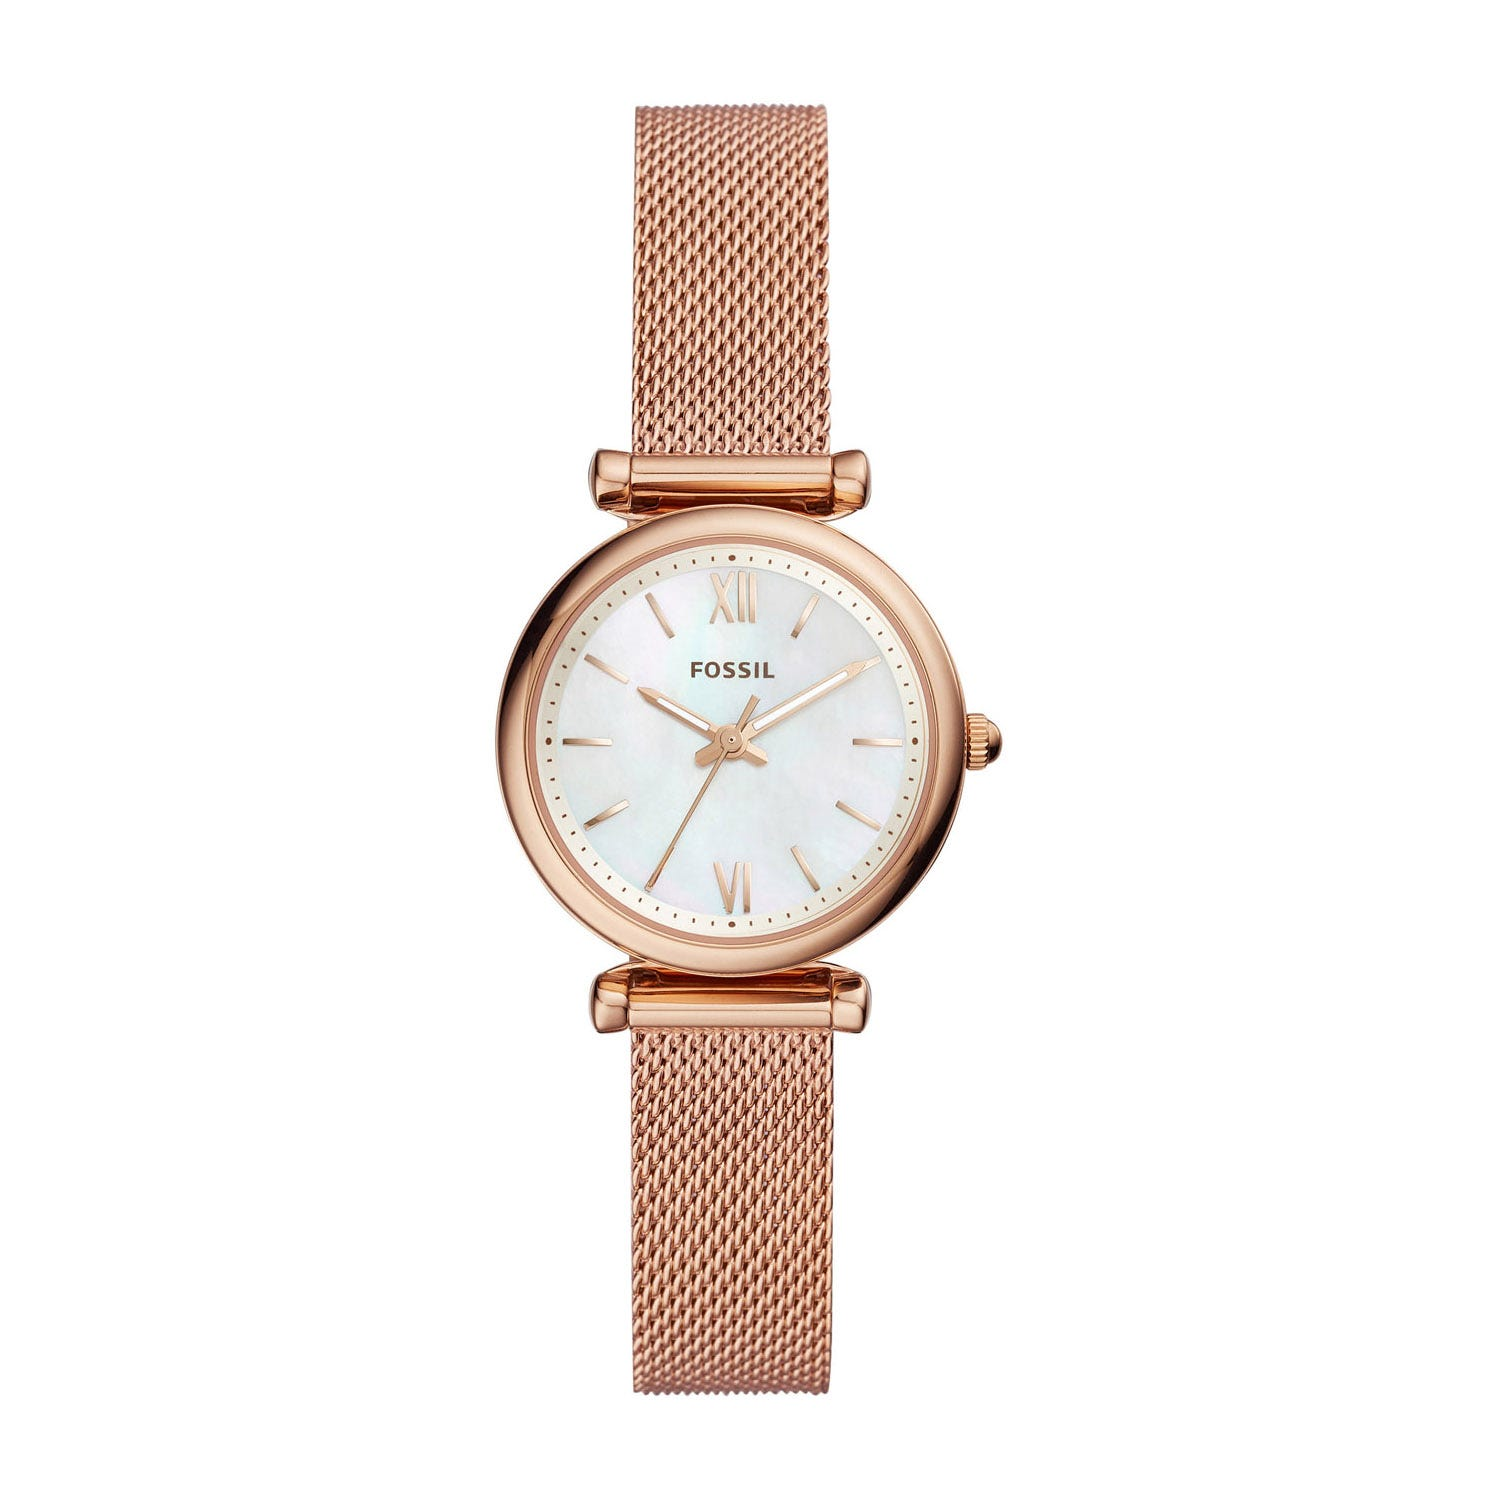 Fossil Mini Carlie Pearl & Rose Gold 28mm Ladies' Watch